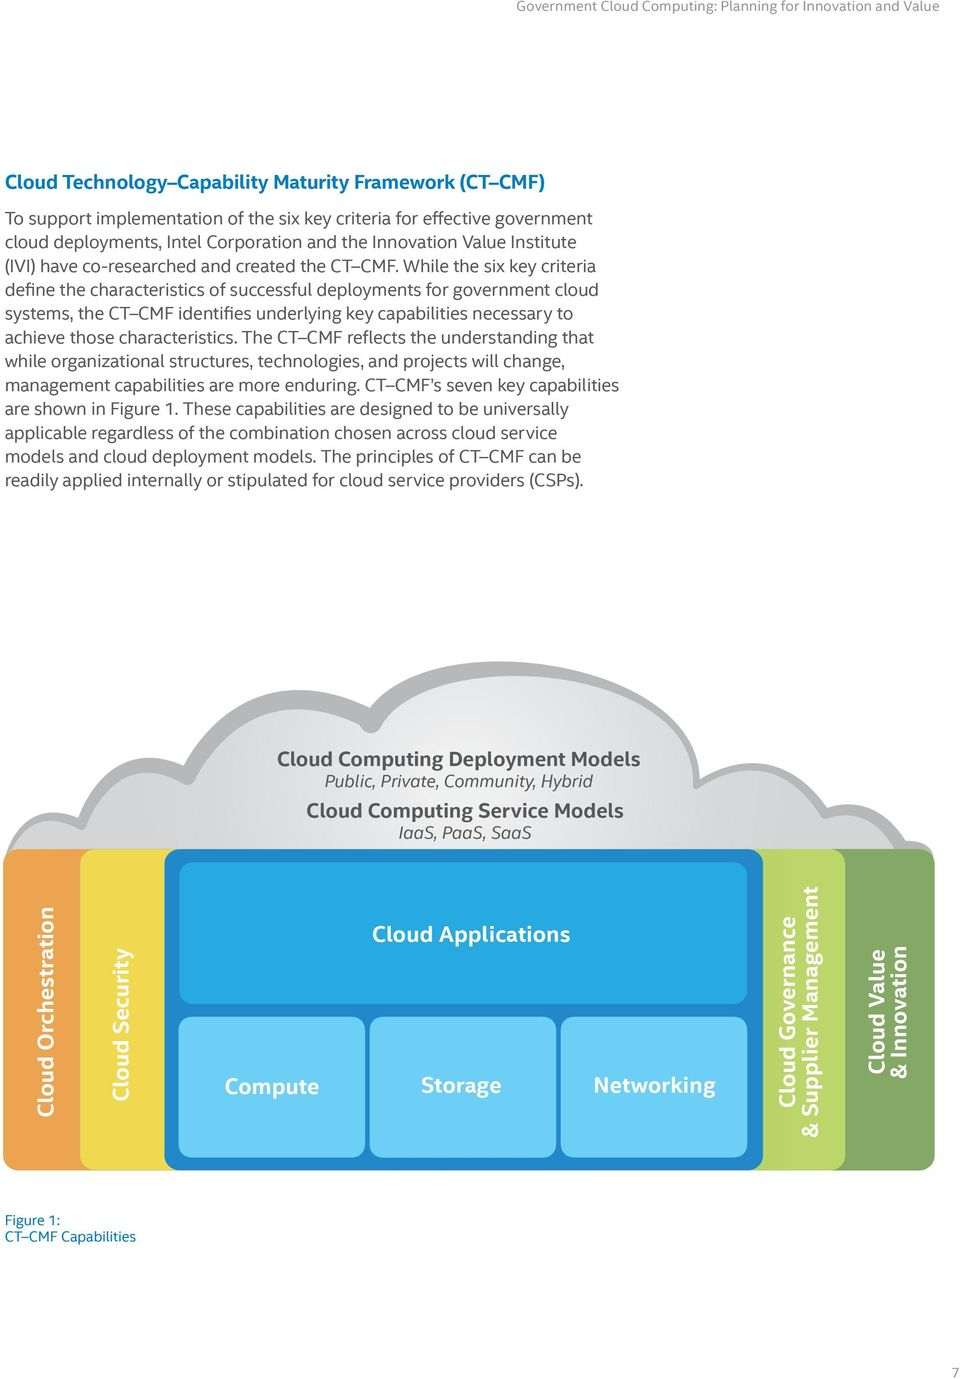 While the six key criteria define the characteristics of successful deployments for government cloud systems, the CT CMF identifies underlying key capabilities necessary to achieve those